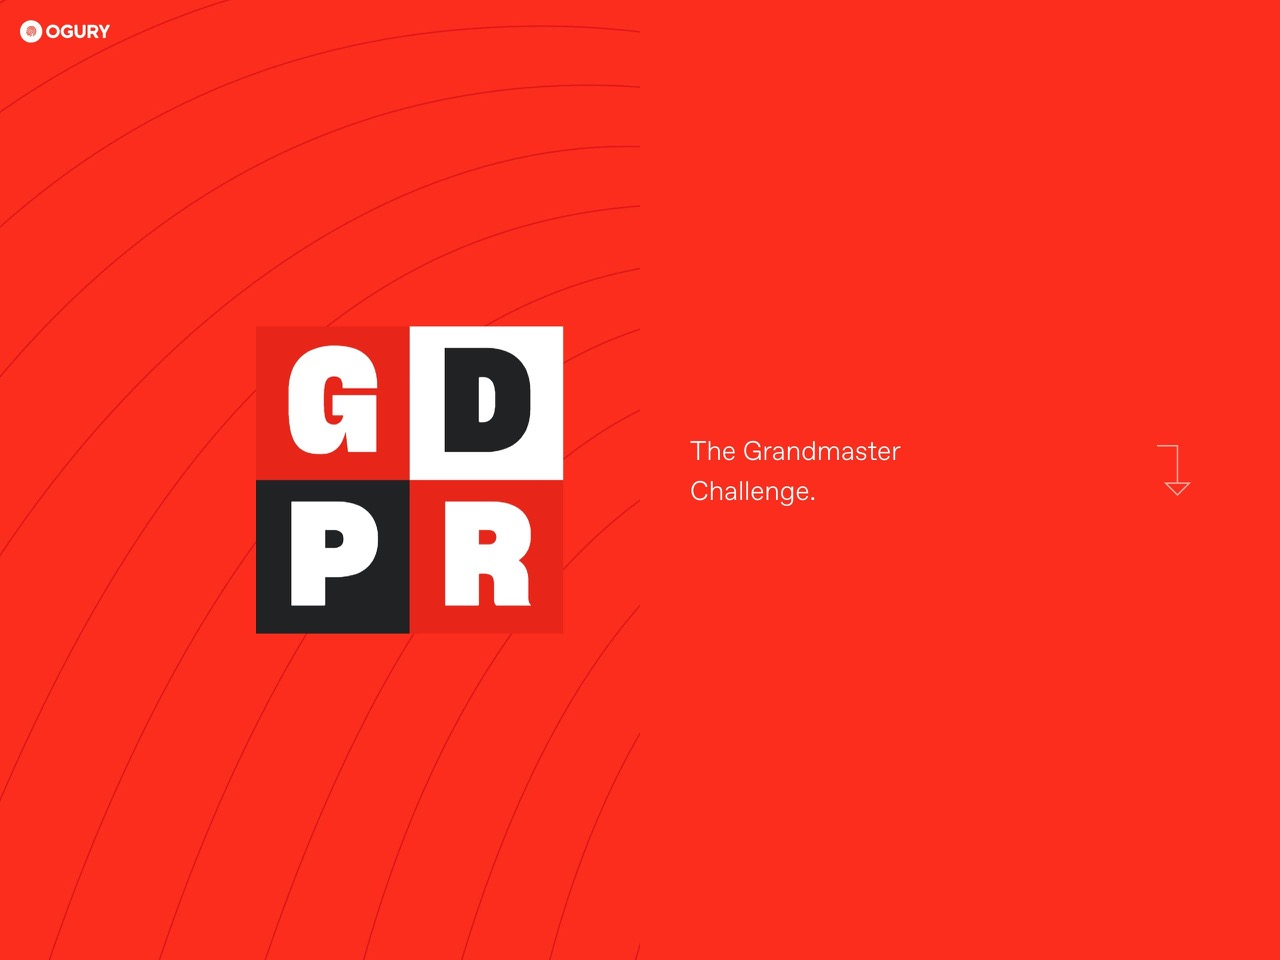 Gdpr   the grandmaster challenge by ogury